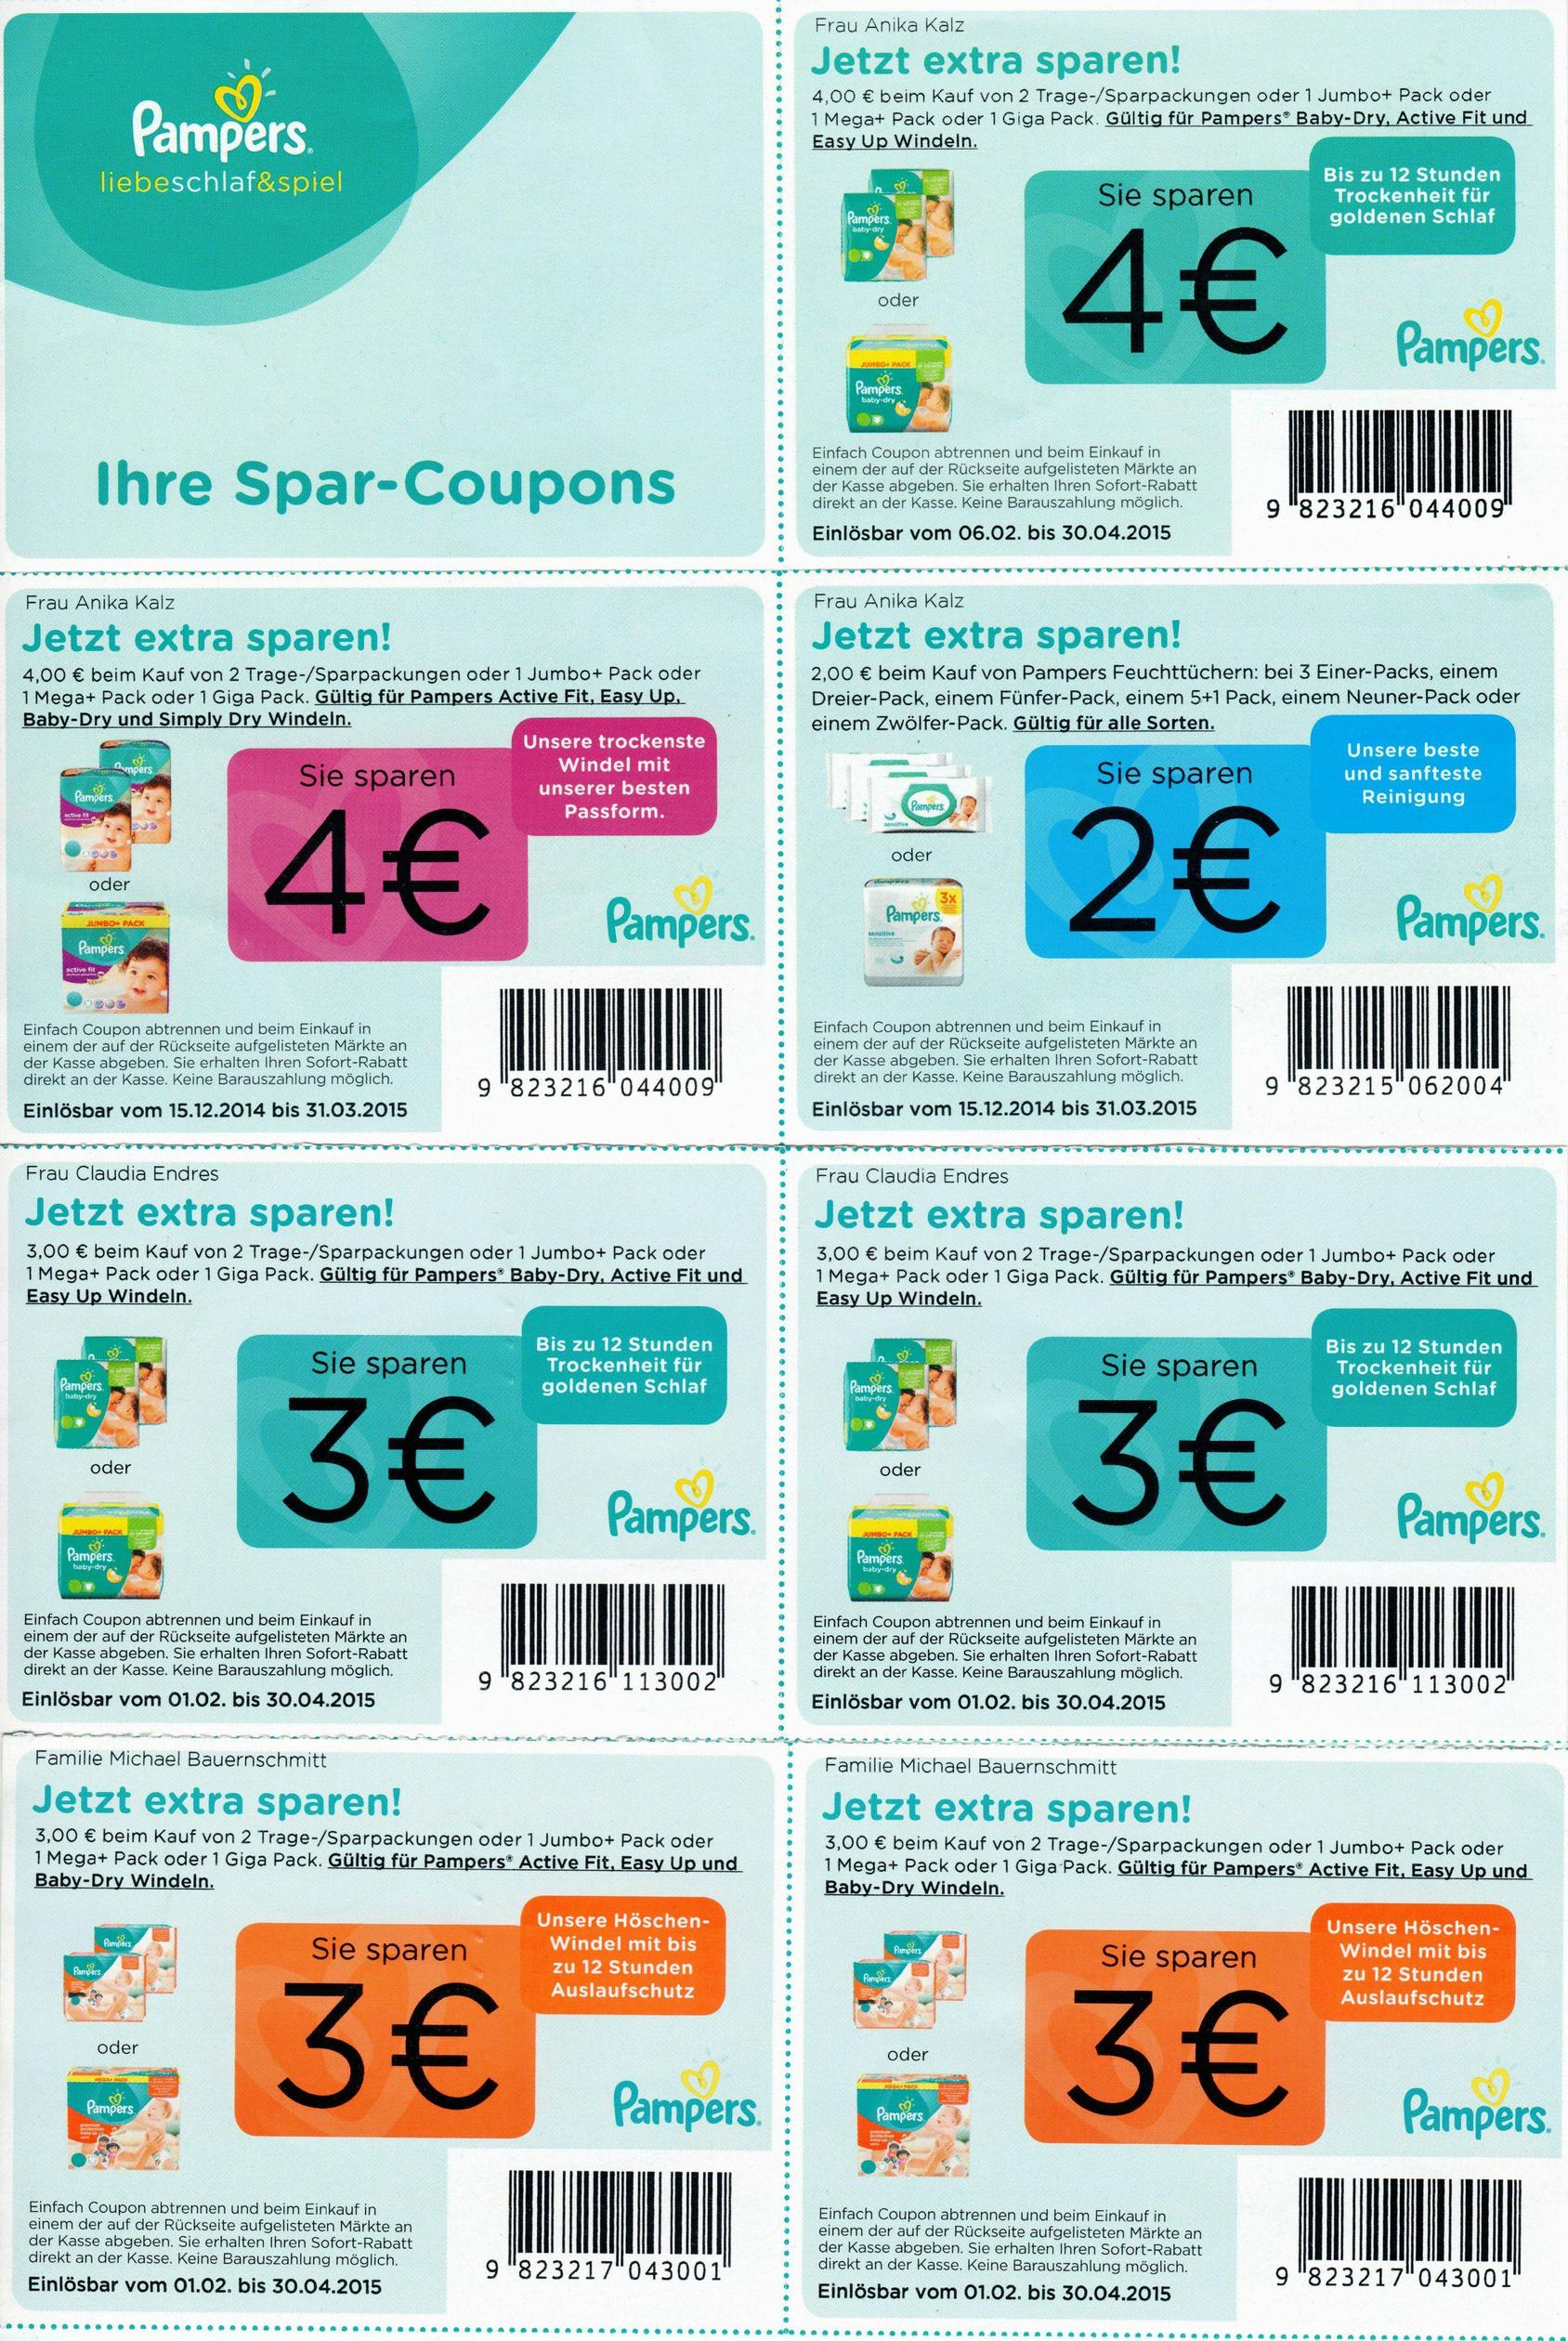 Pampers Coupons Zum Ausdrucken 2018 - Coupons Ob Tampons - Free Printable Spiriva Coupons